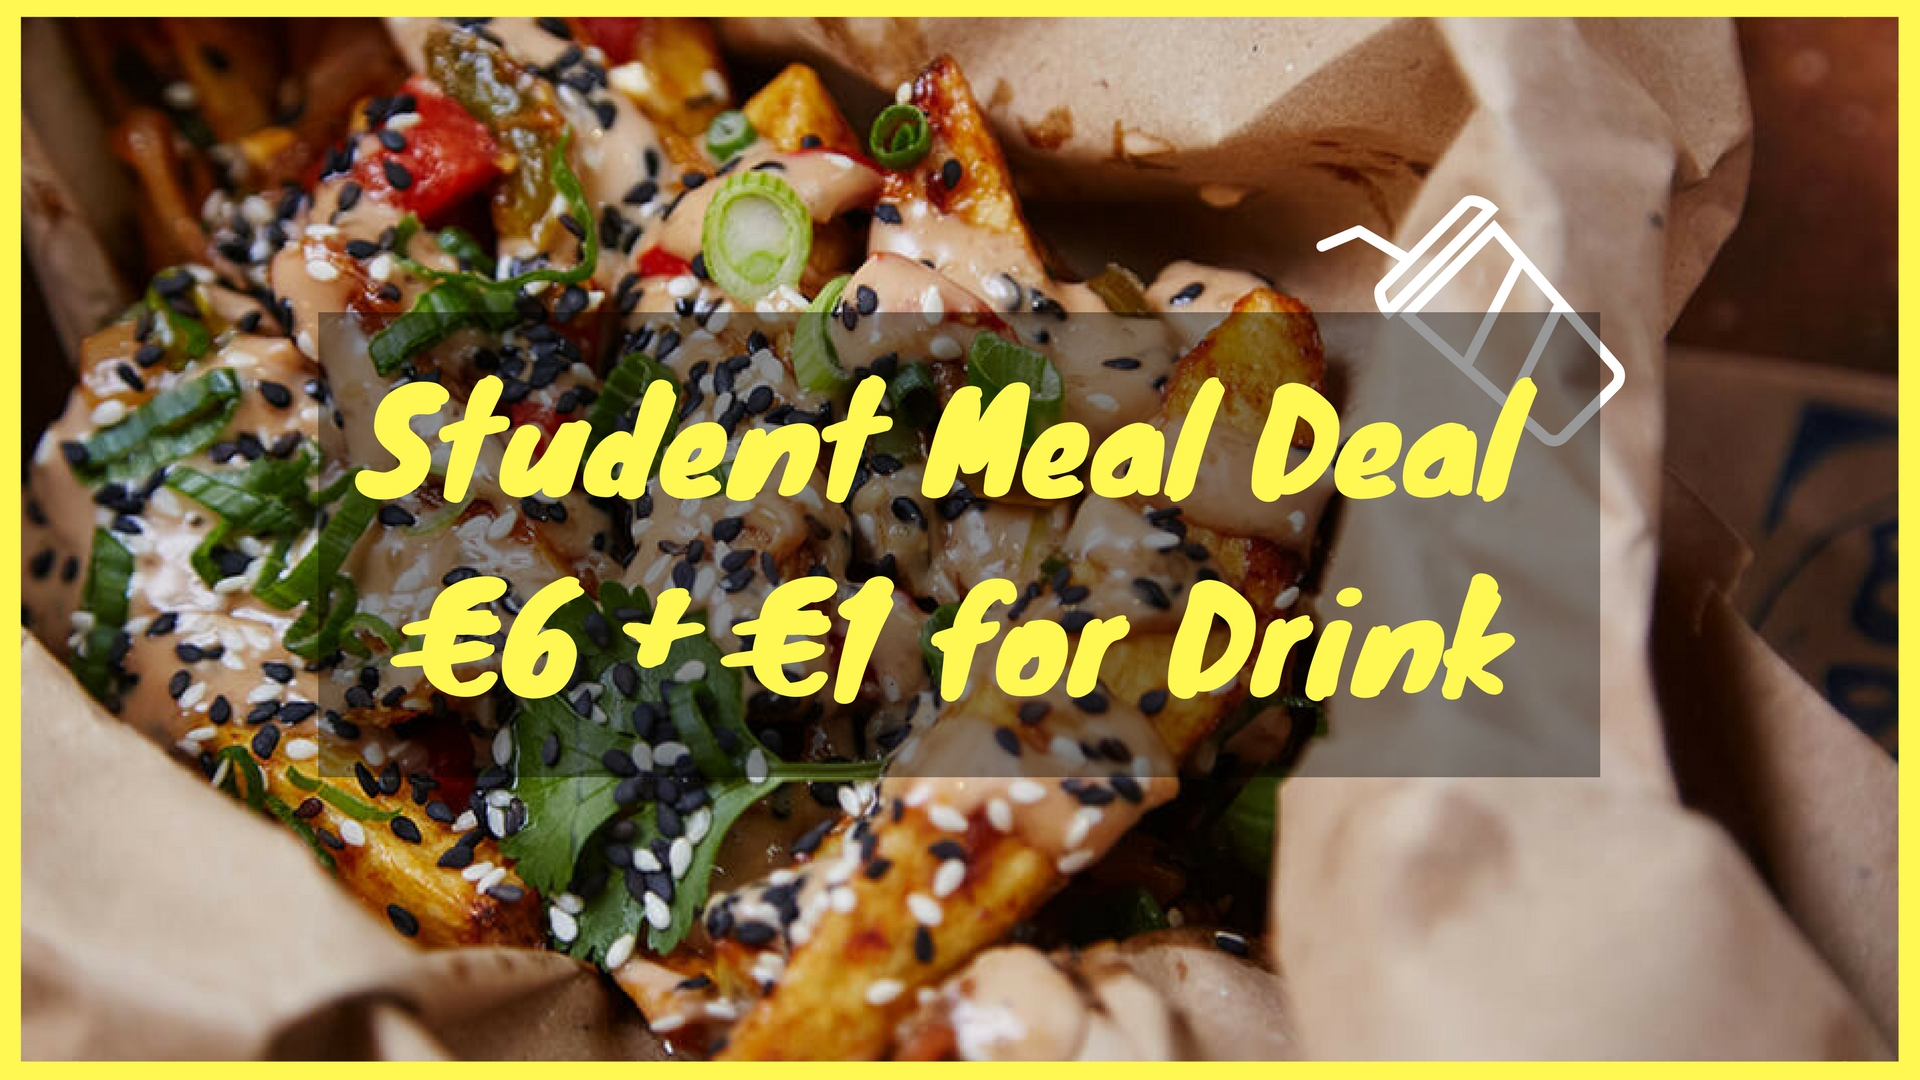 meal-deal-6--1-for-drink.jpg